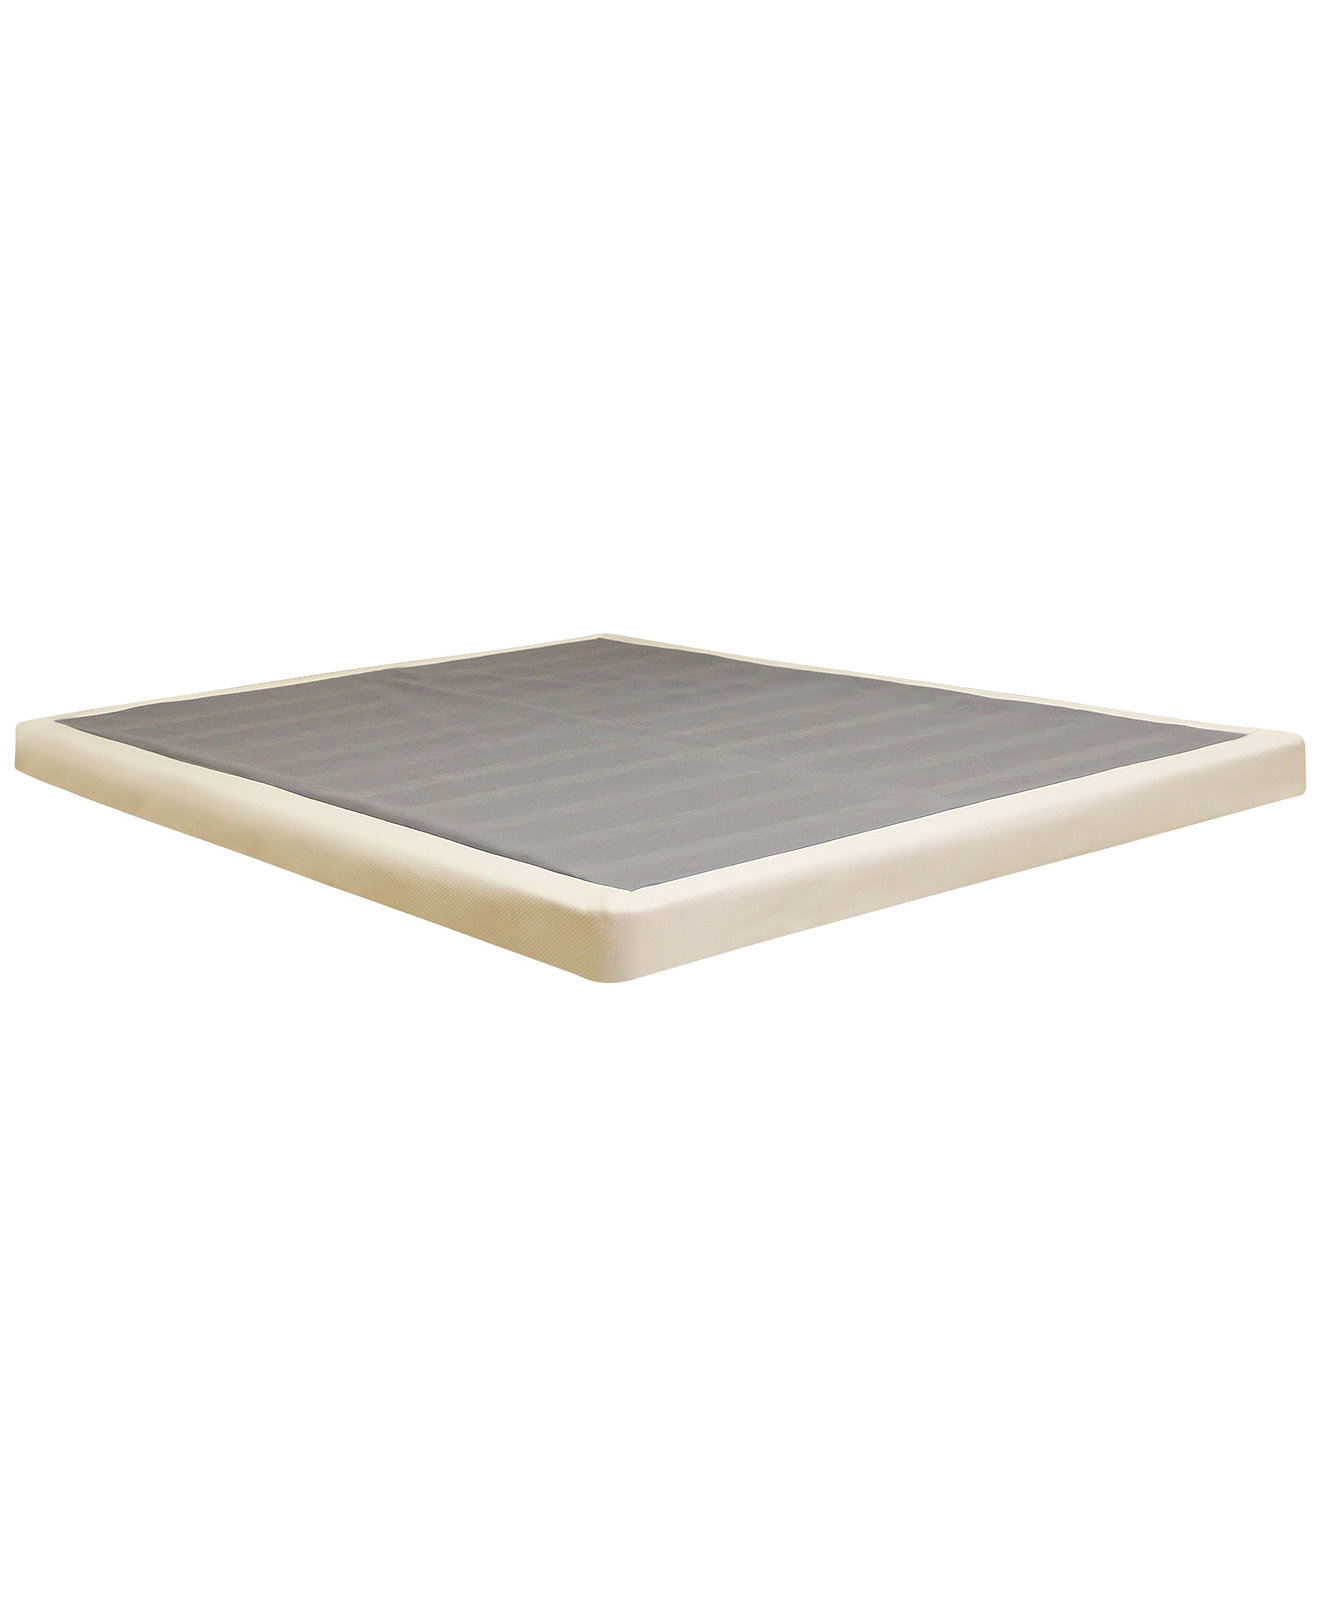 sleep trends 4 inch low profile mattress instant foundation quick ship only at